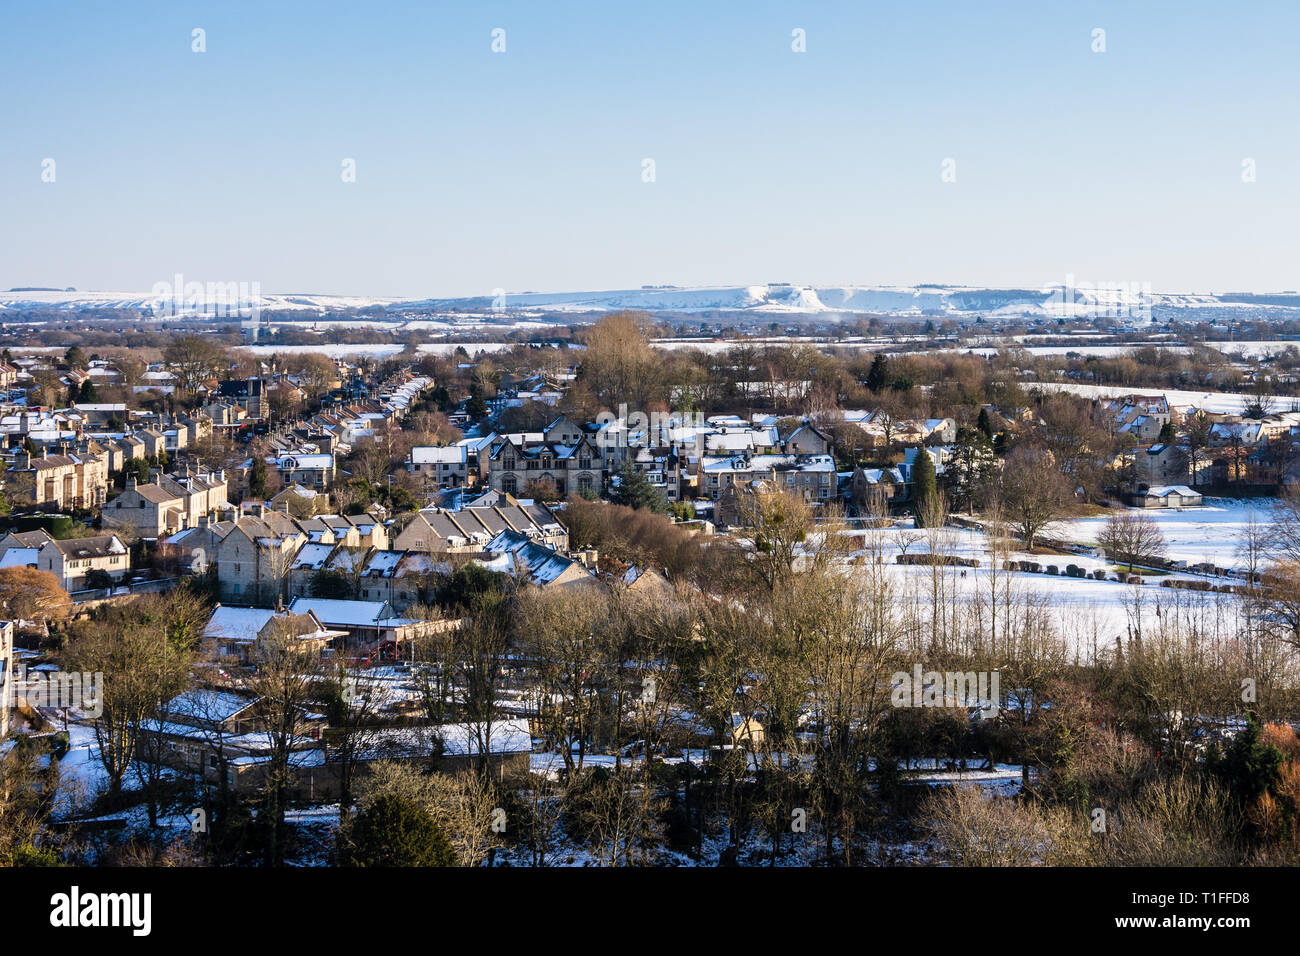 A view looking across a snowy Georgian Bradford on Avon in the sun Wiltshire, UK Stock Photo